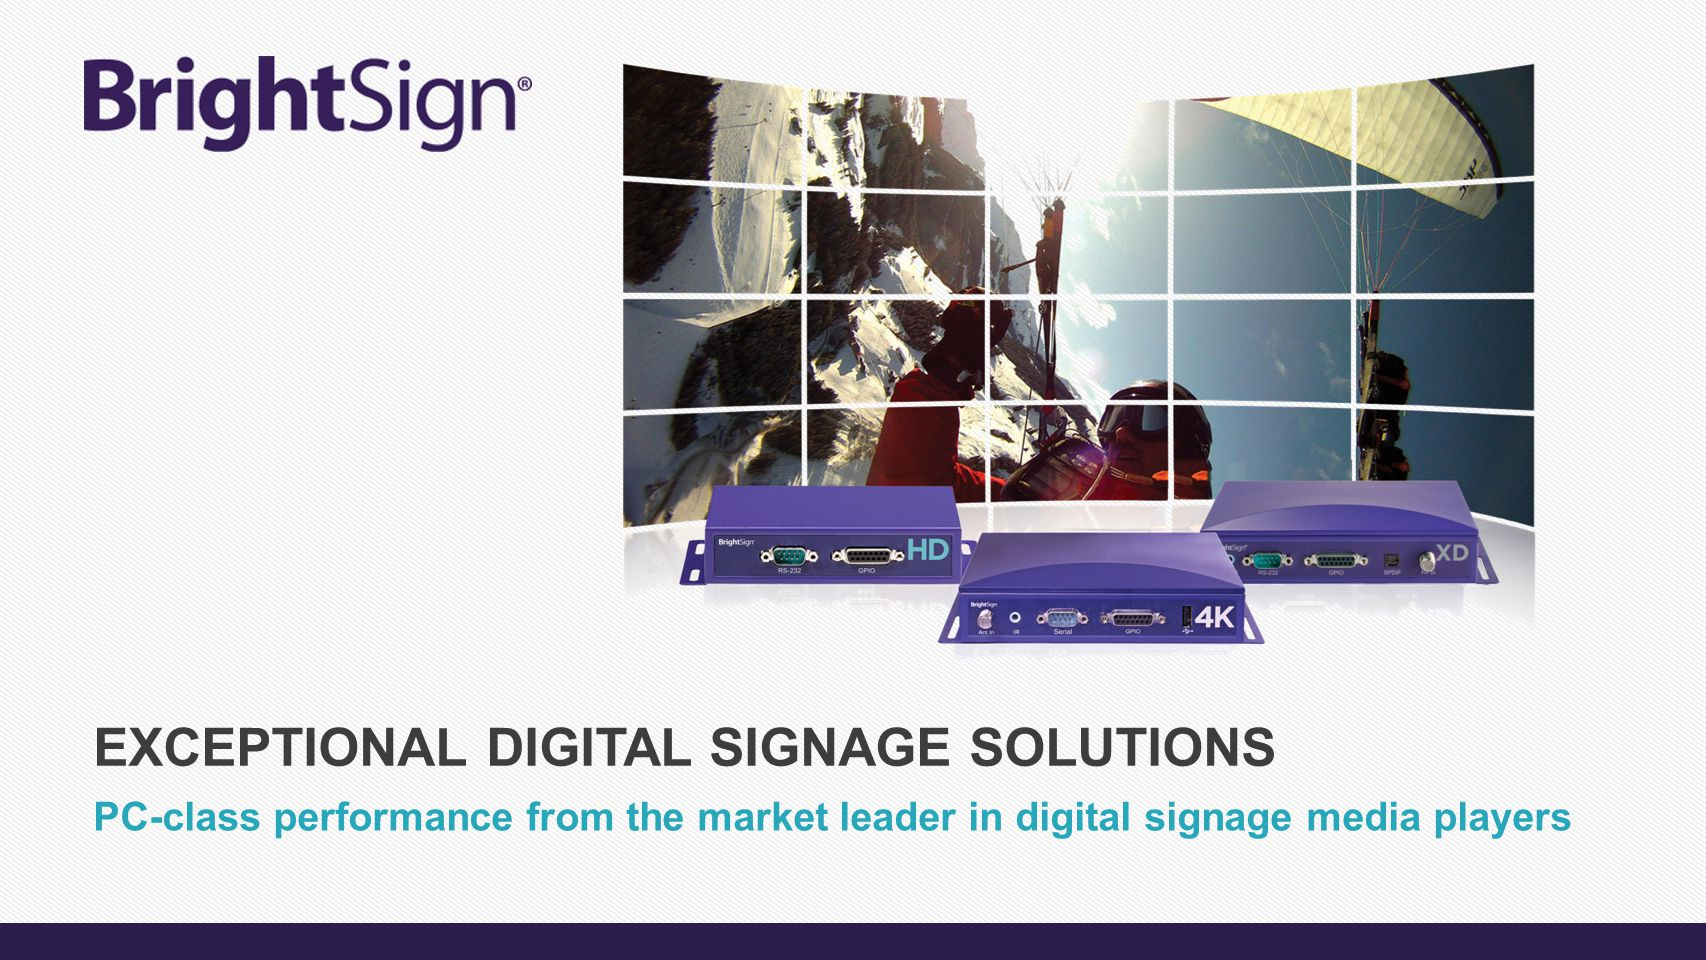 PC-class performance from the market leader in digital signage media players EXCEPTIONAL DIGITAL SIGNAGE SOLUTIONS